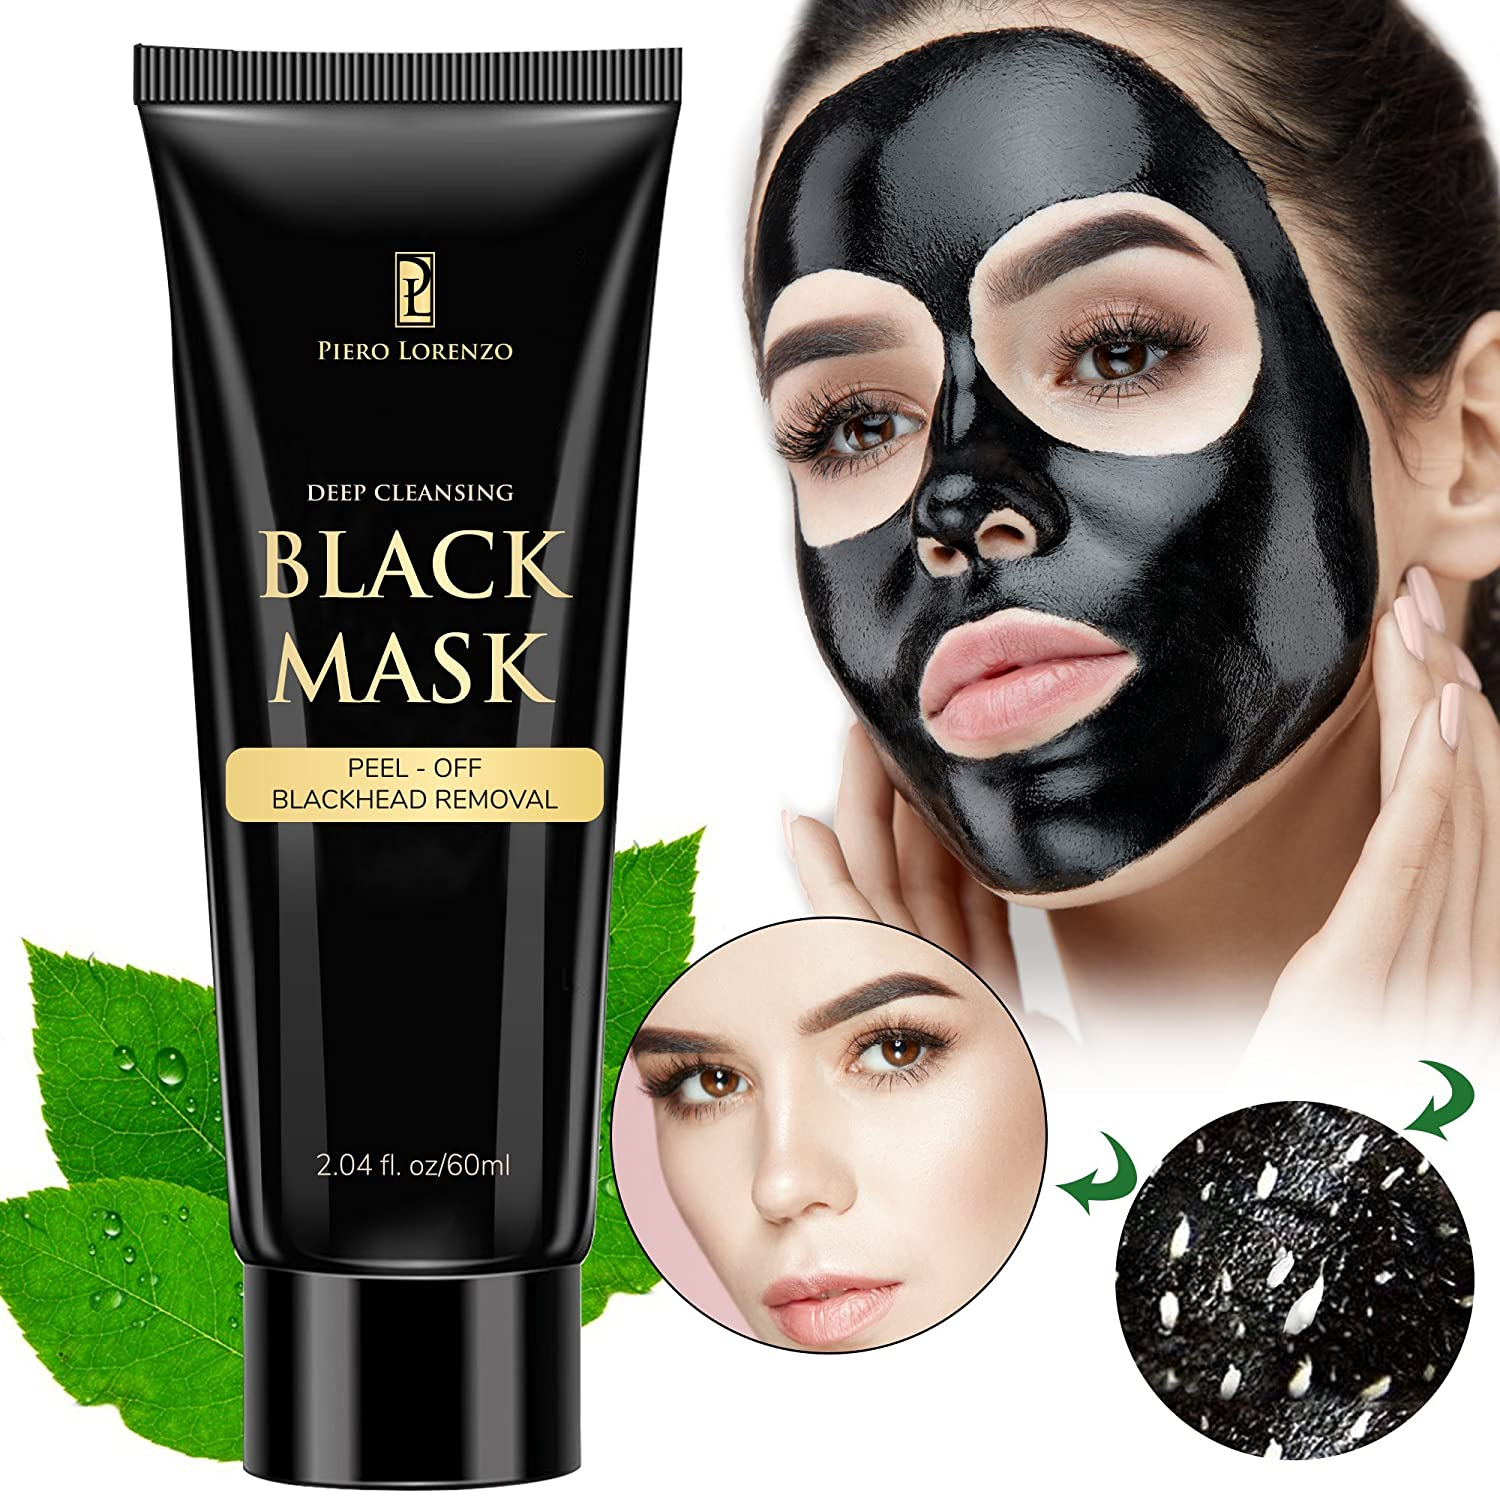 Blackhead Remover Black Mask Cleaner - Purifying Quality Black Peel off Charcoal Mask Best Facial Mask (1 Pack) Piero Lorenzo